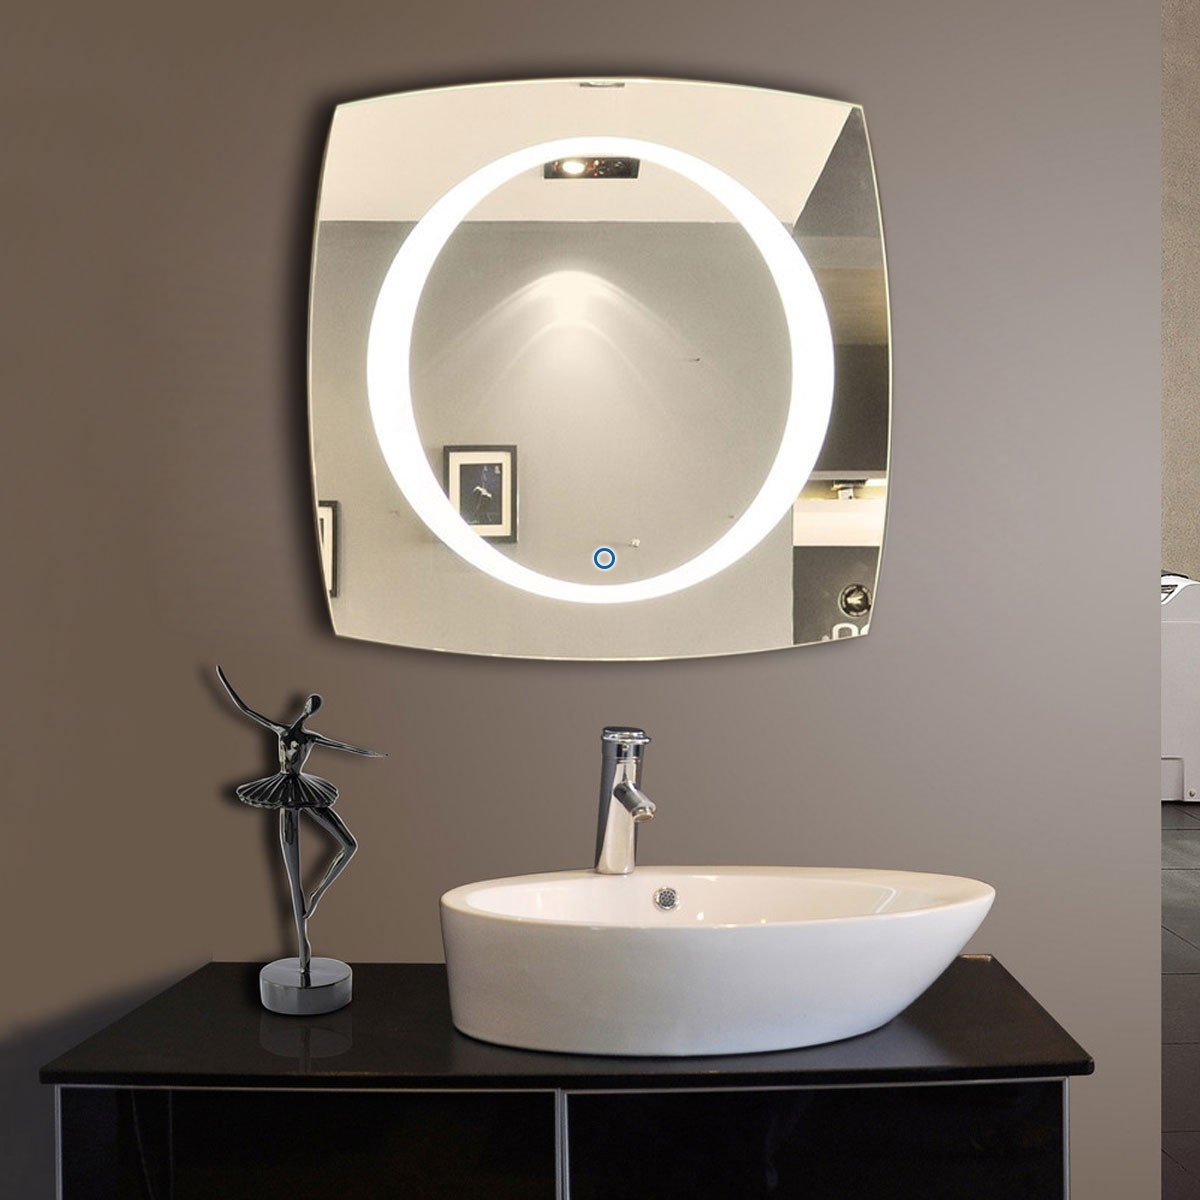 40 x 40 In. LED Mirror with Touch Button (DK-OD-N006)